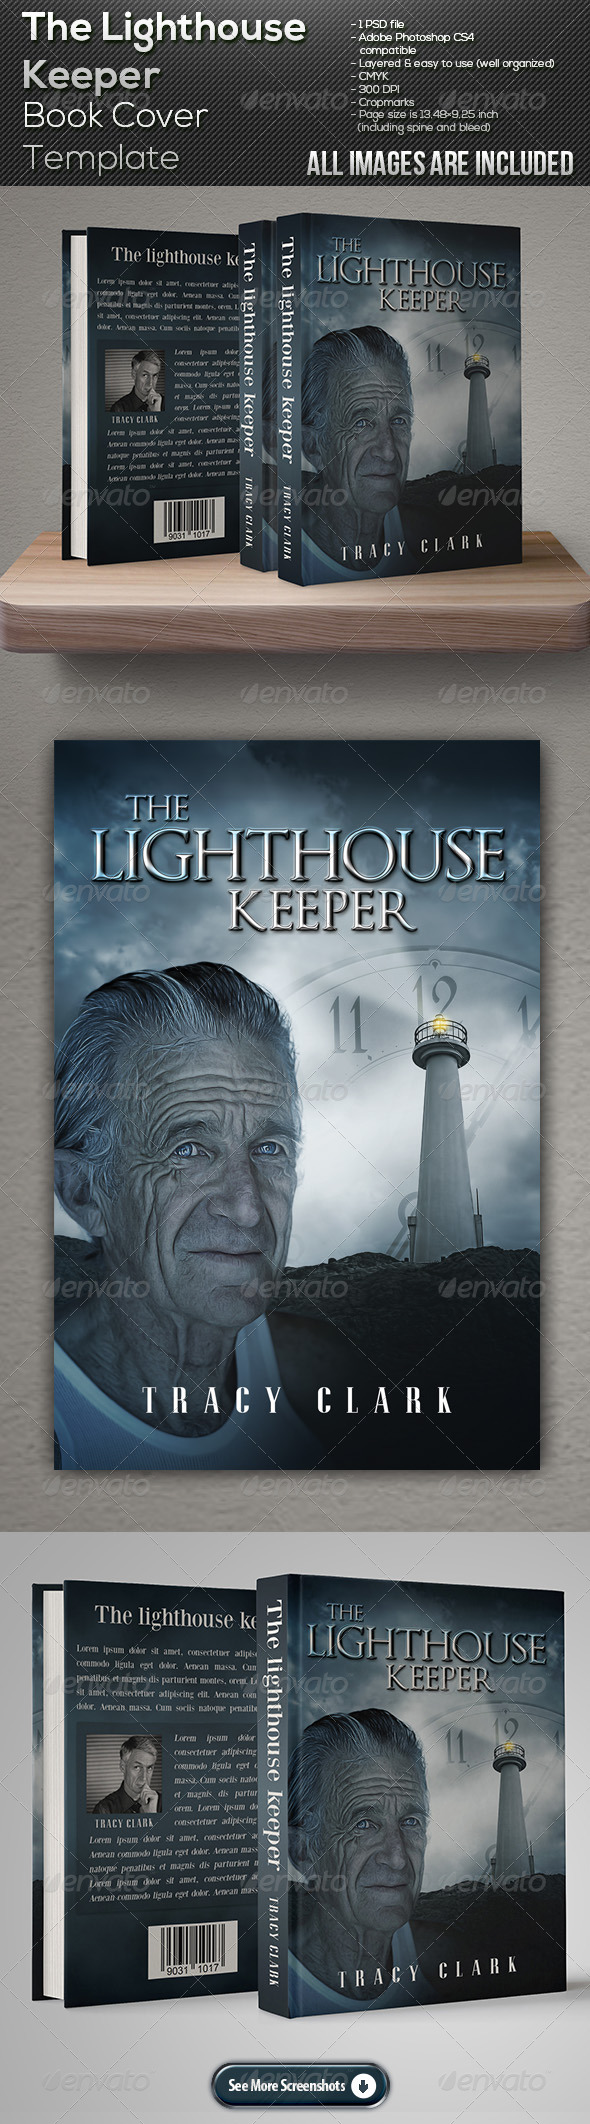 GraphicRiver The Lighthouse Keeper Book Cover Template 7667767